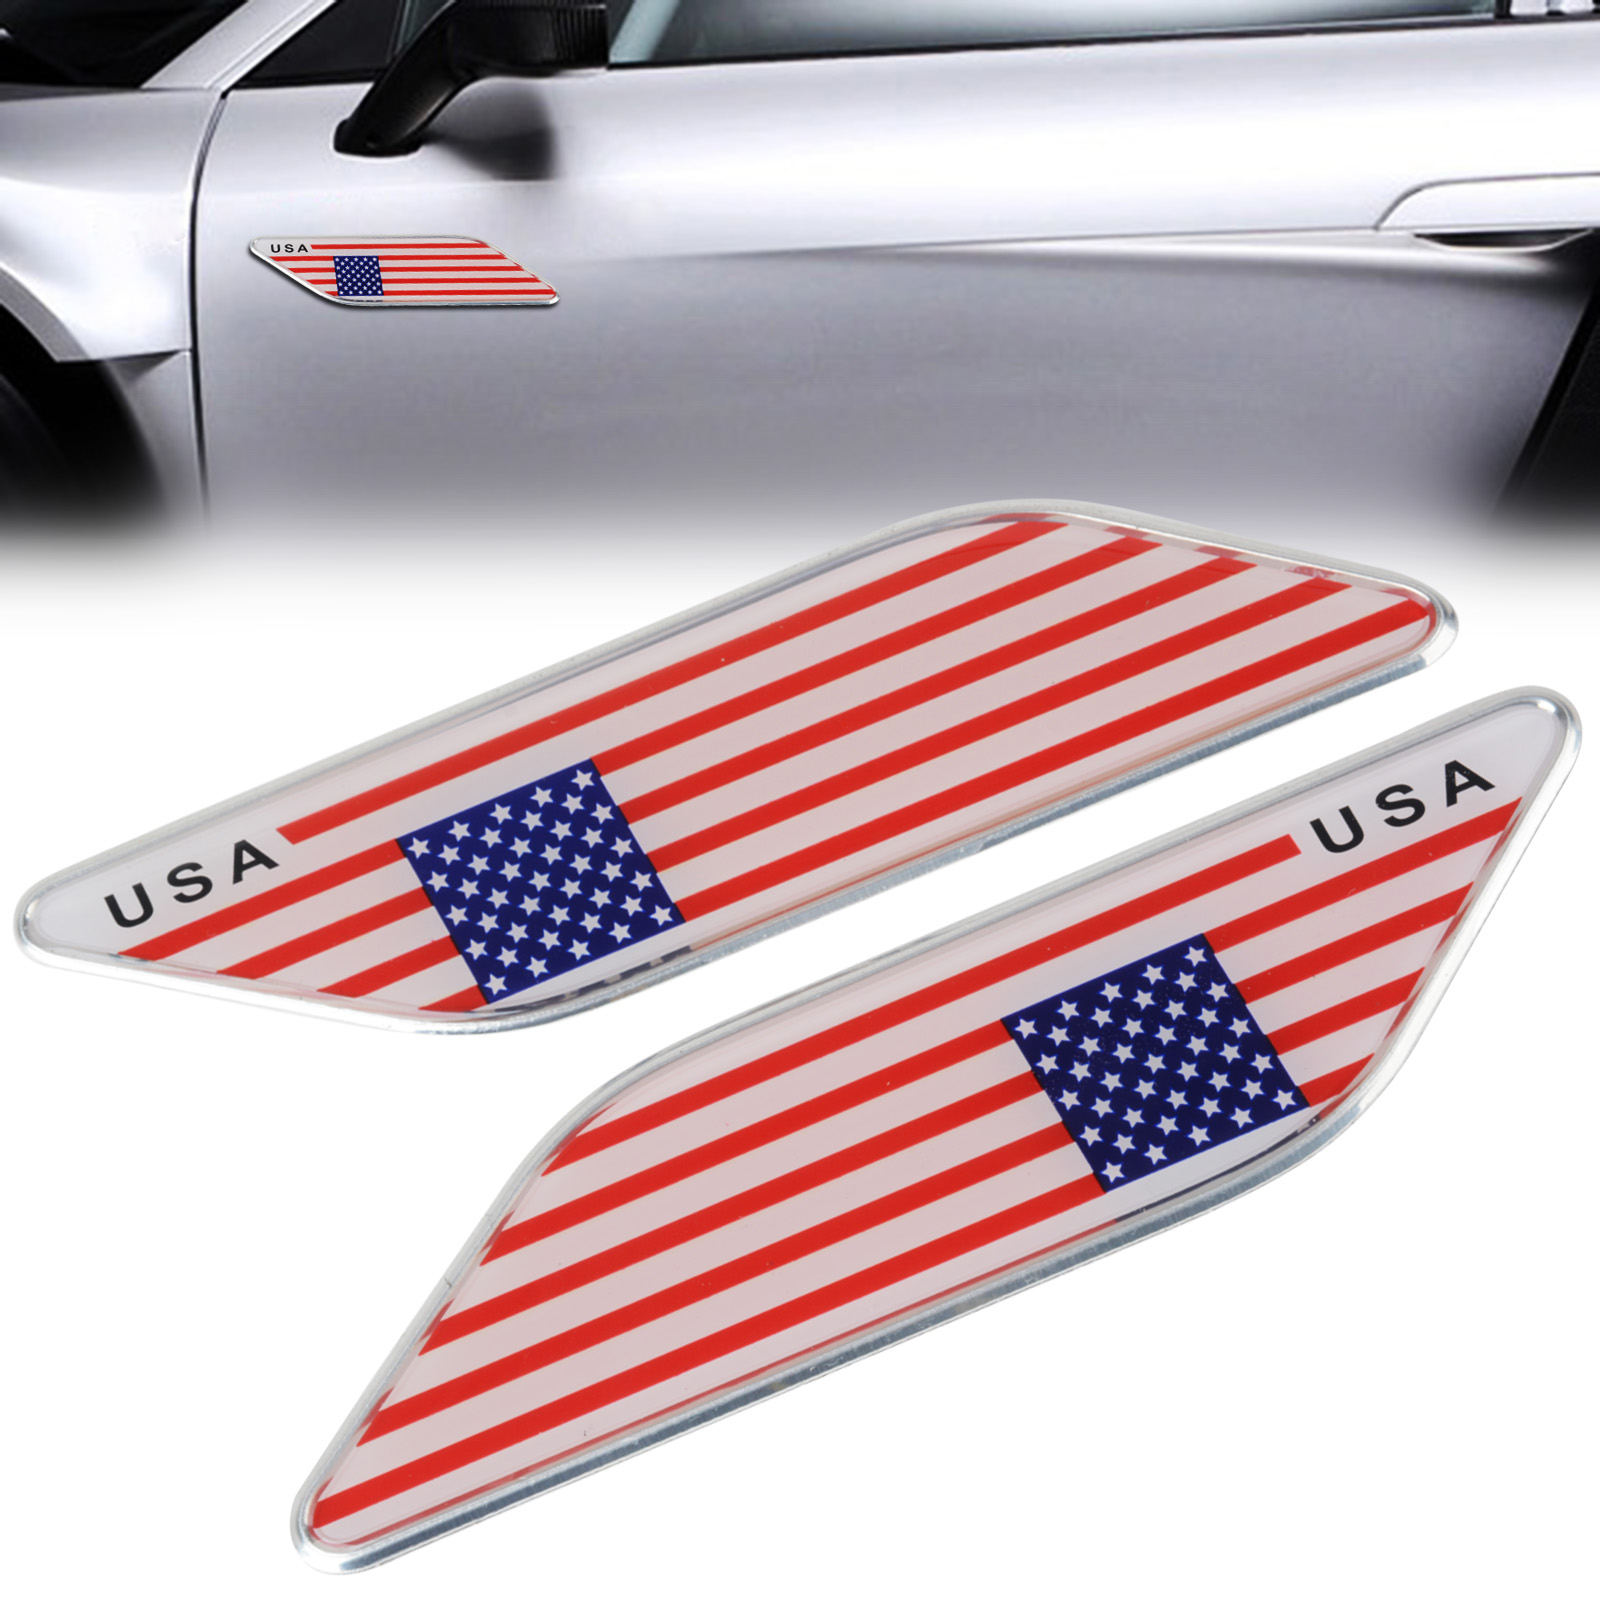 Mayitr 2pcs High Quality Metal American USA Flag Emblem Car Side Fender Skirt Badge Sticker Decal For Car Universal Use